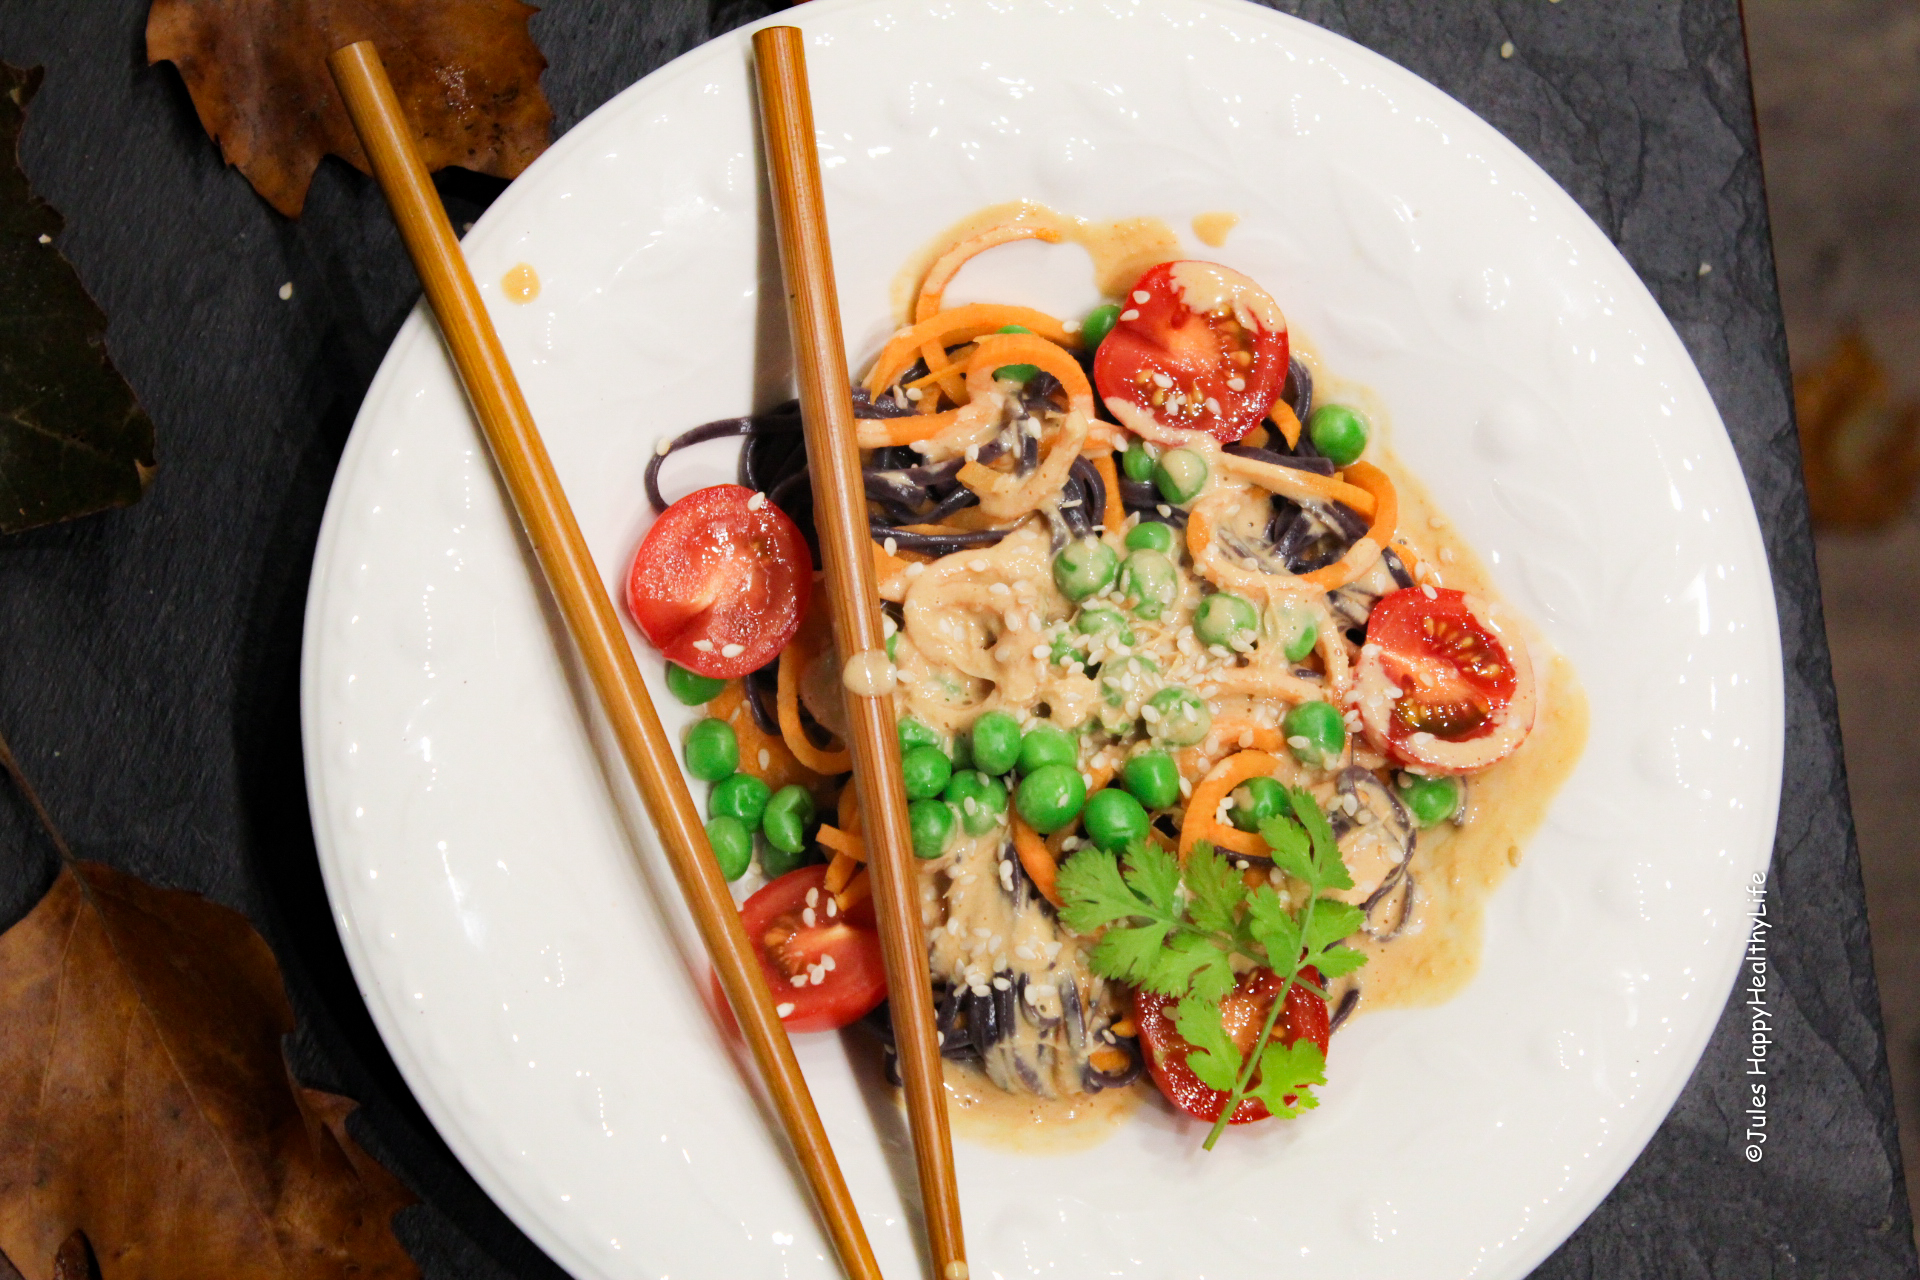 Sweet Potato Noodles with Peanut Sauce - Main and vegan Dish